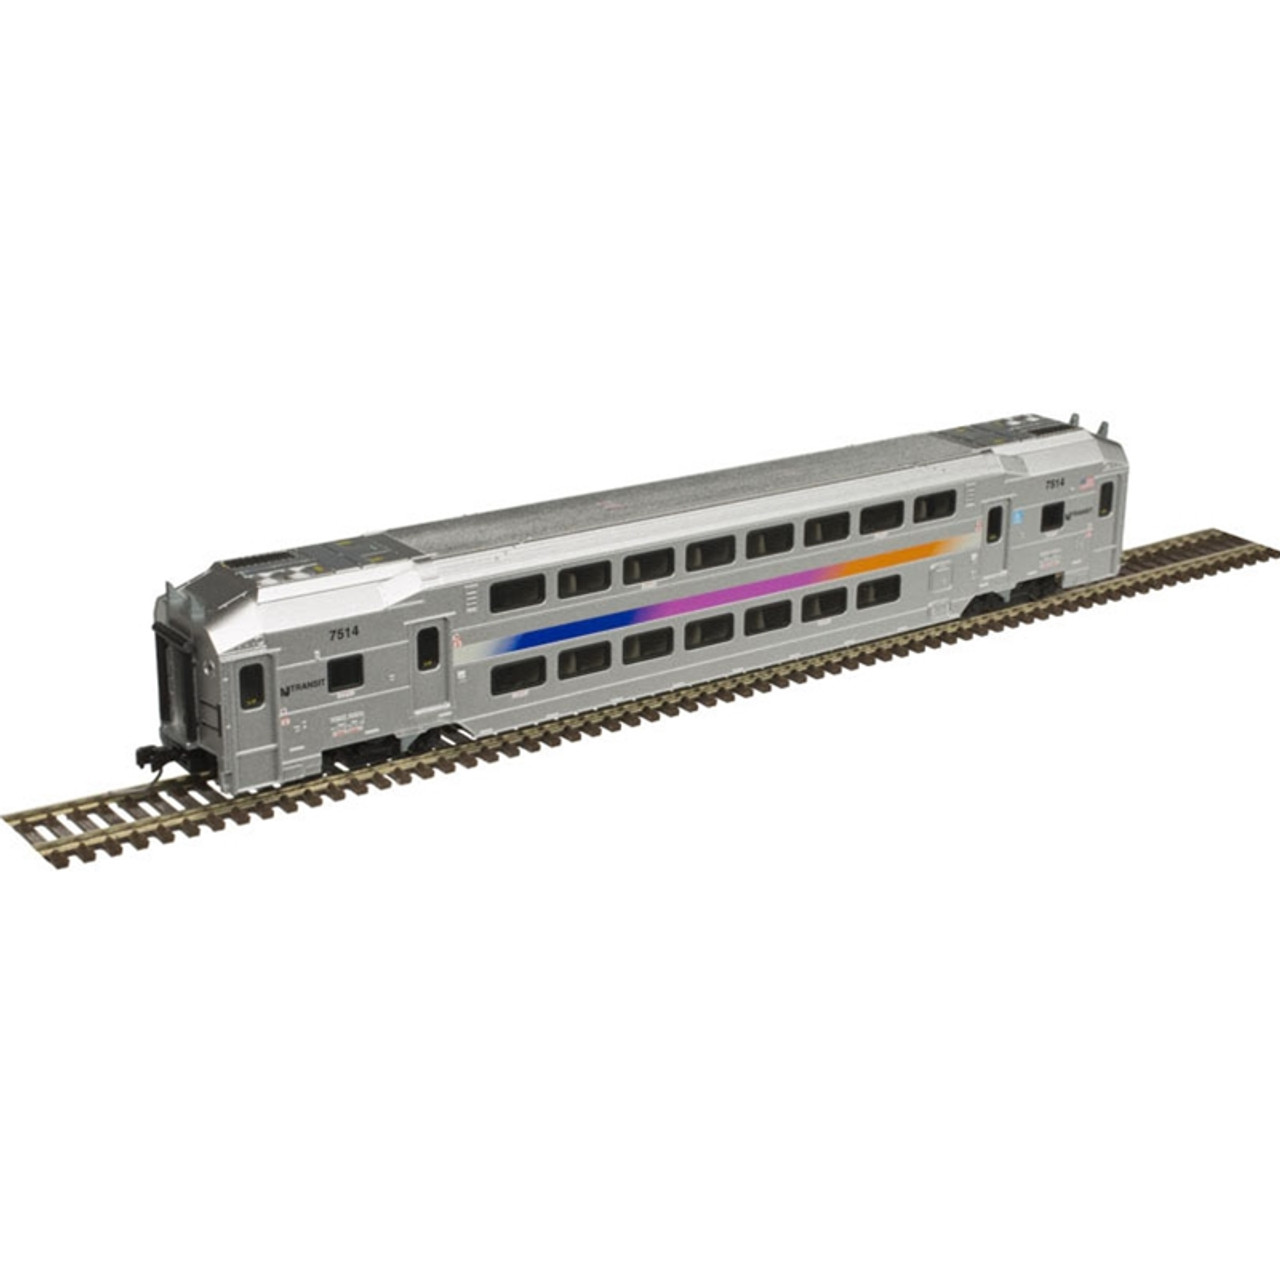 ATLAS 40004052 NJ Transit - Multi-Level Trailer with out Toilet #7514 (SCALE=N) Part # 150-40004052